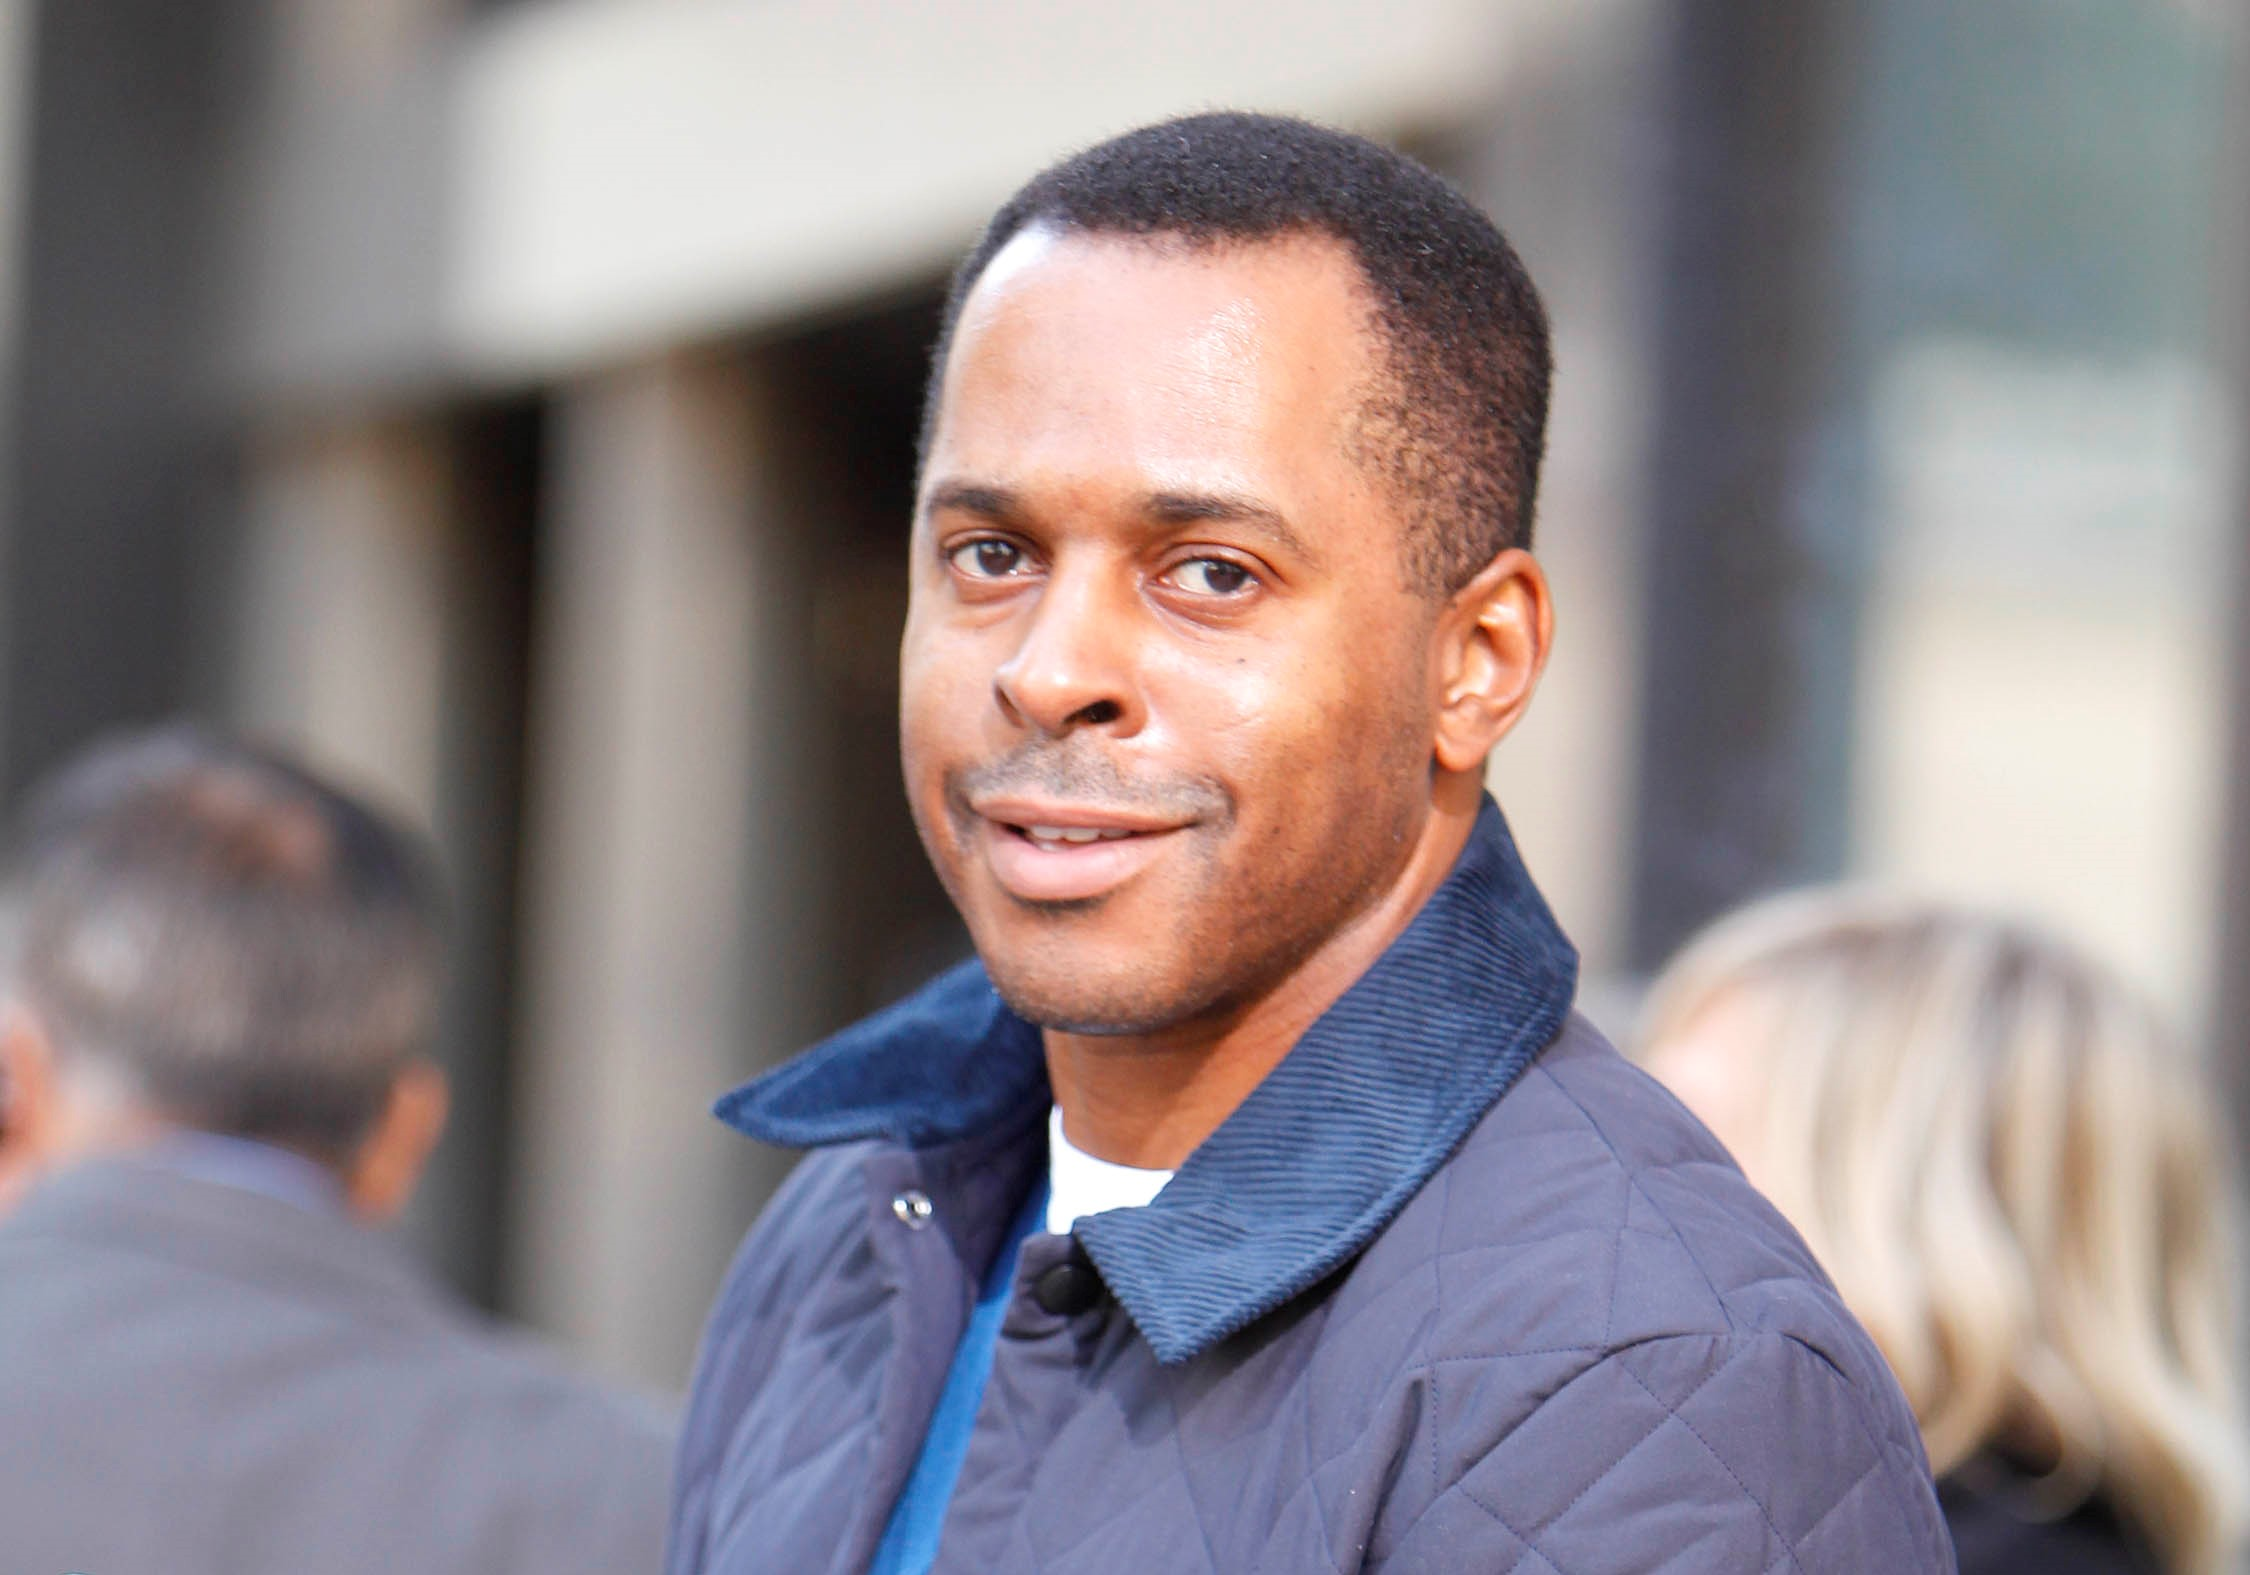 Andi Peters forced to present GMB's competition slot drenched by water